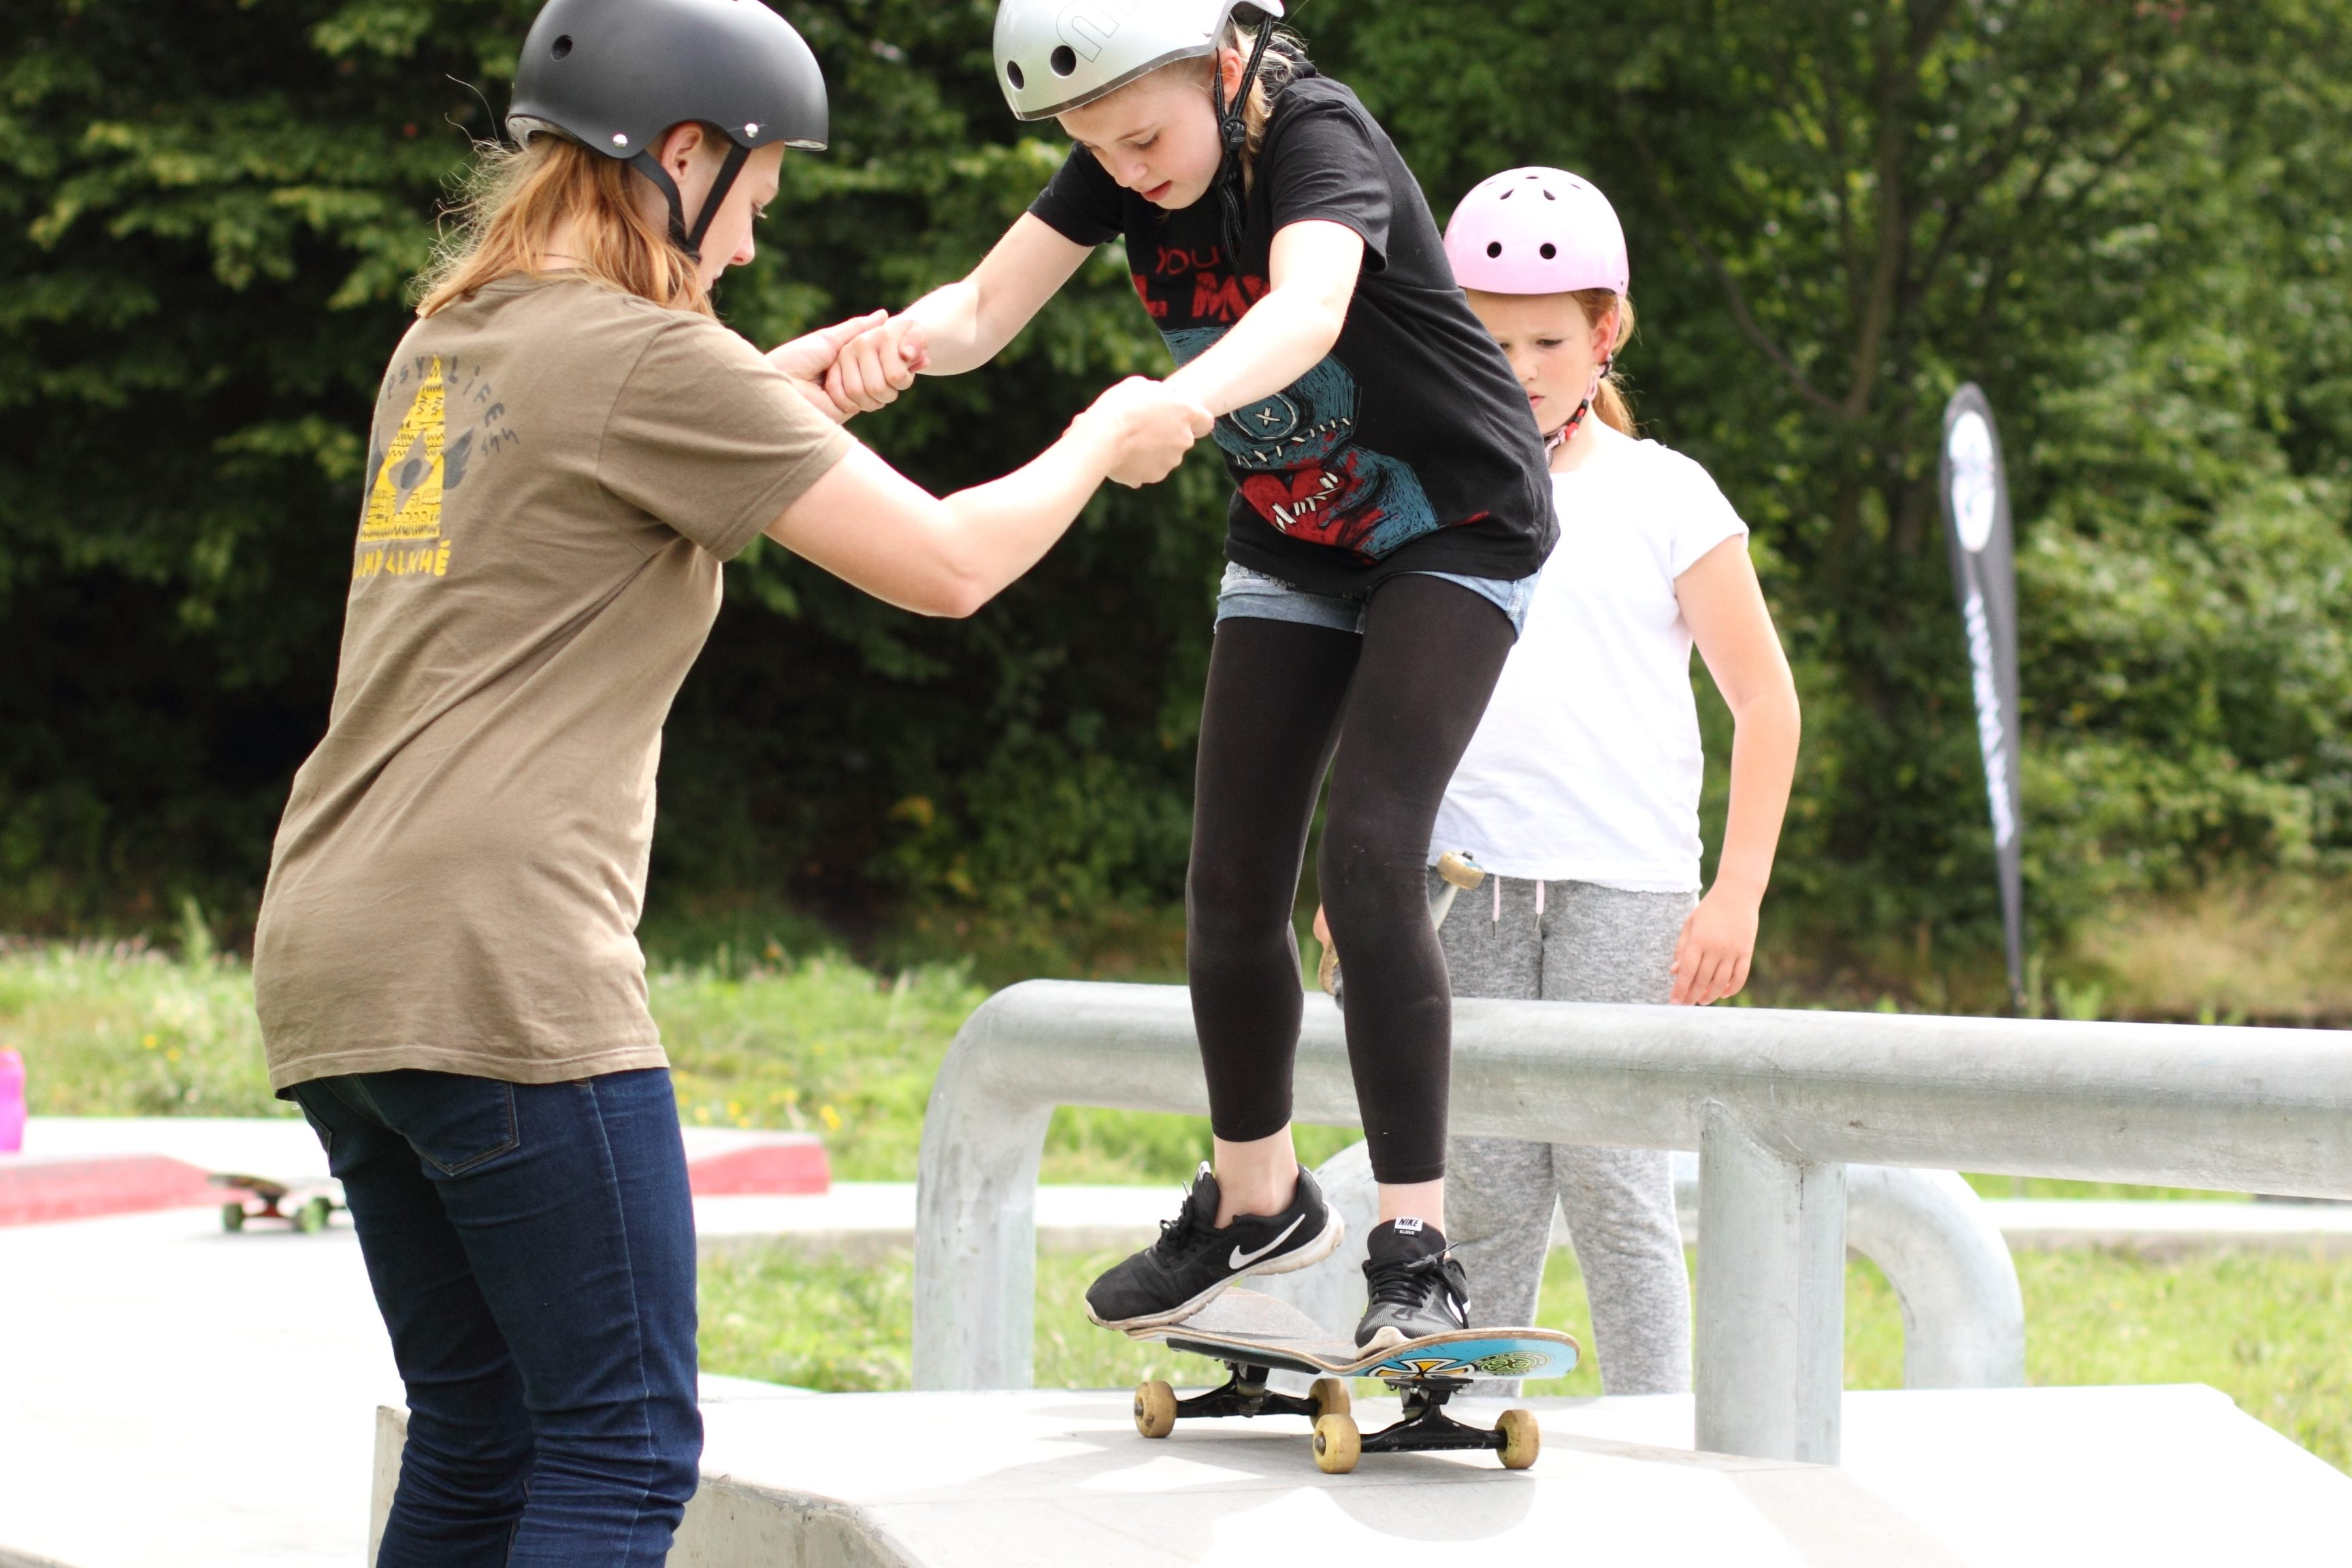 ParkLives Introduction to Skateboarding Sessions in July